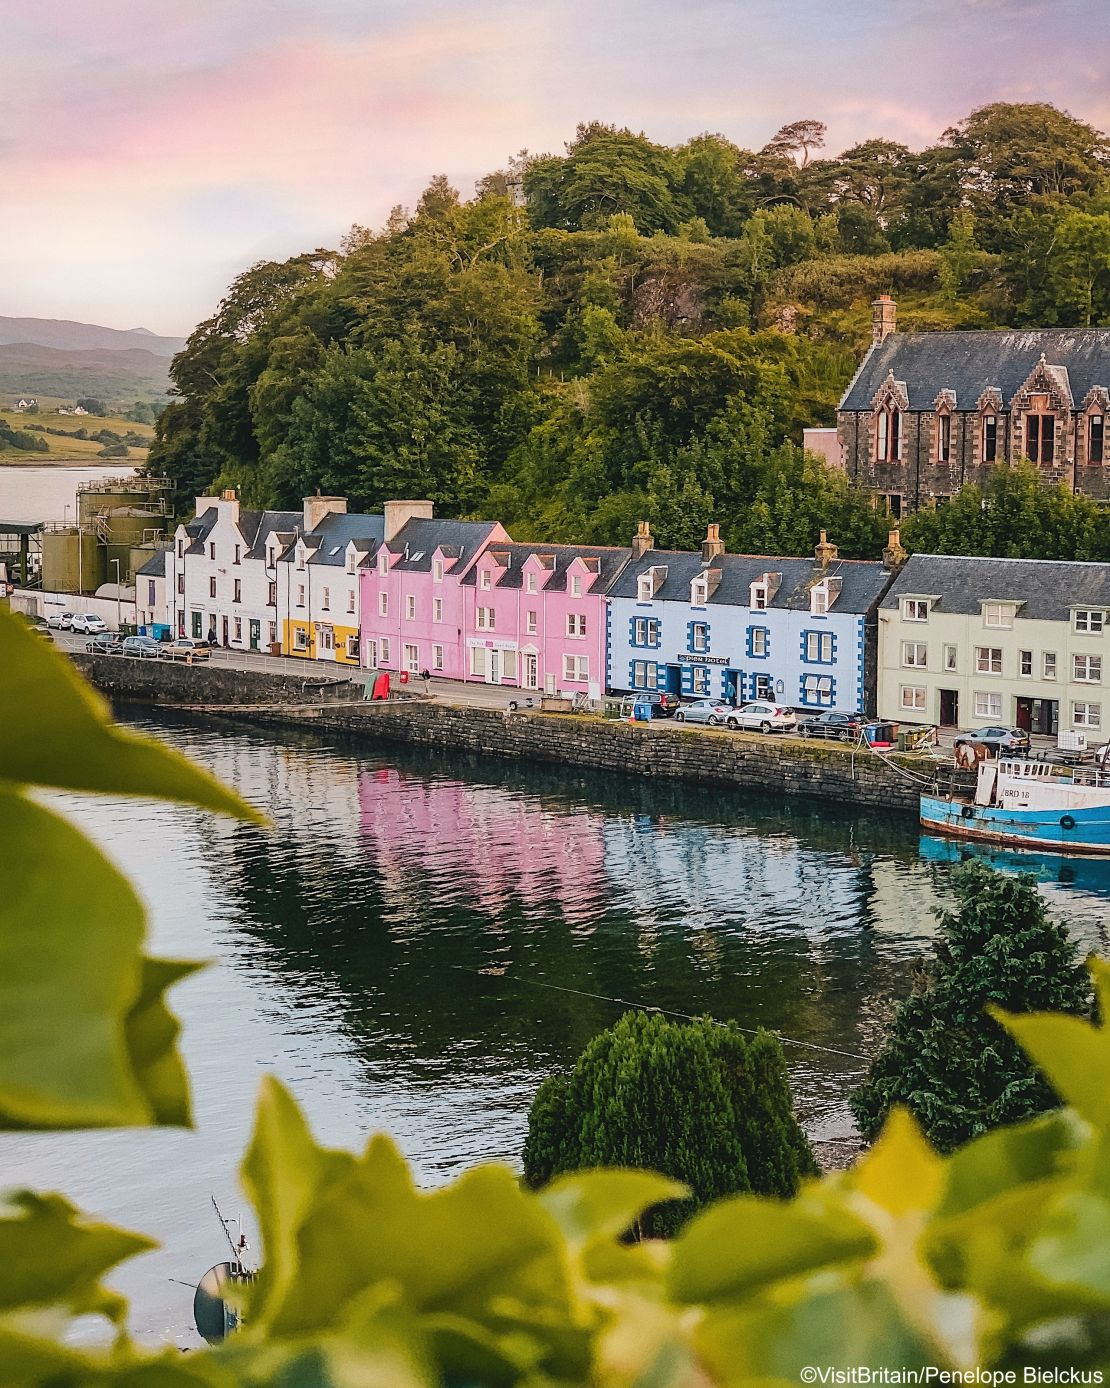 Colourful painted terraced painted houses along the harbour wall with reflections in water, Portree, Isle of Skye, Scotland.